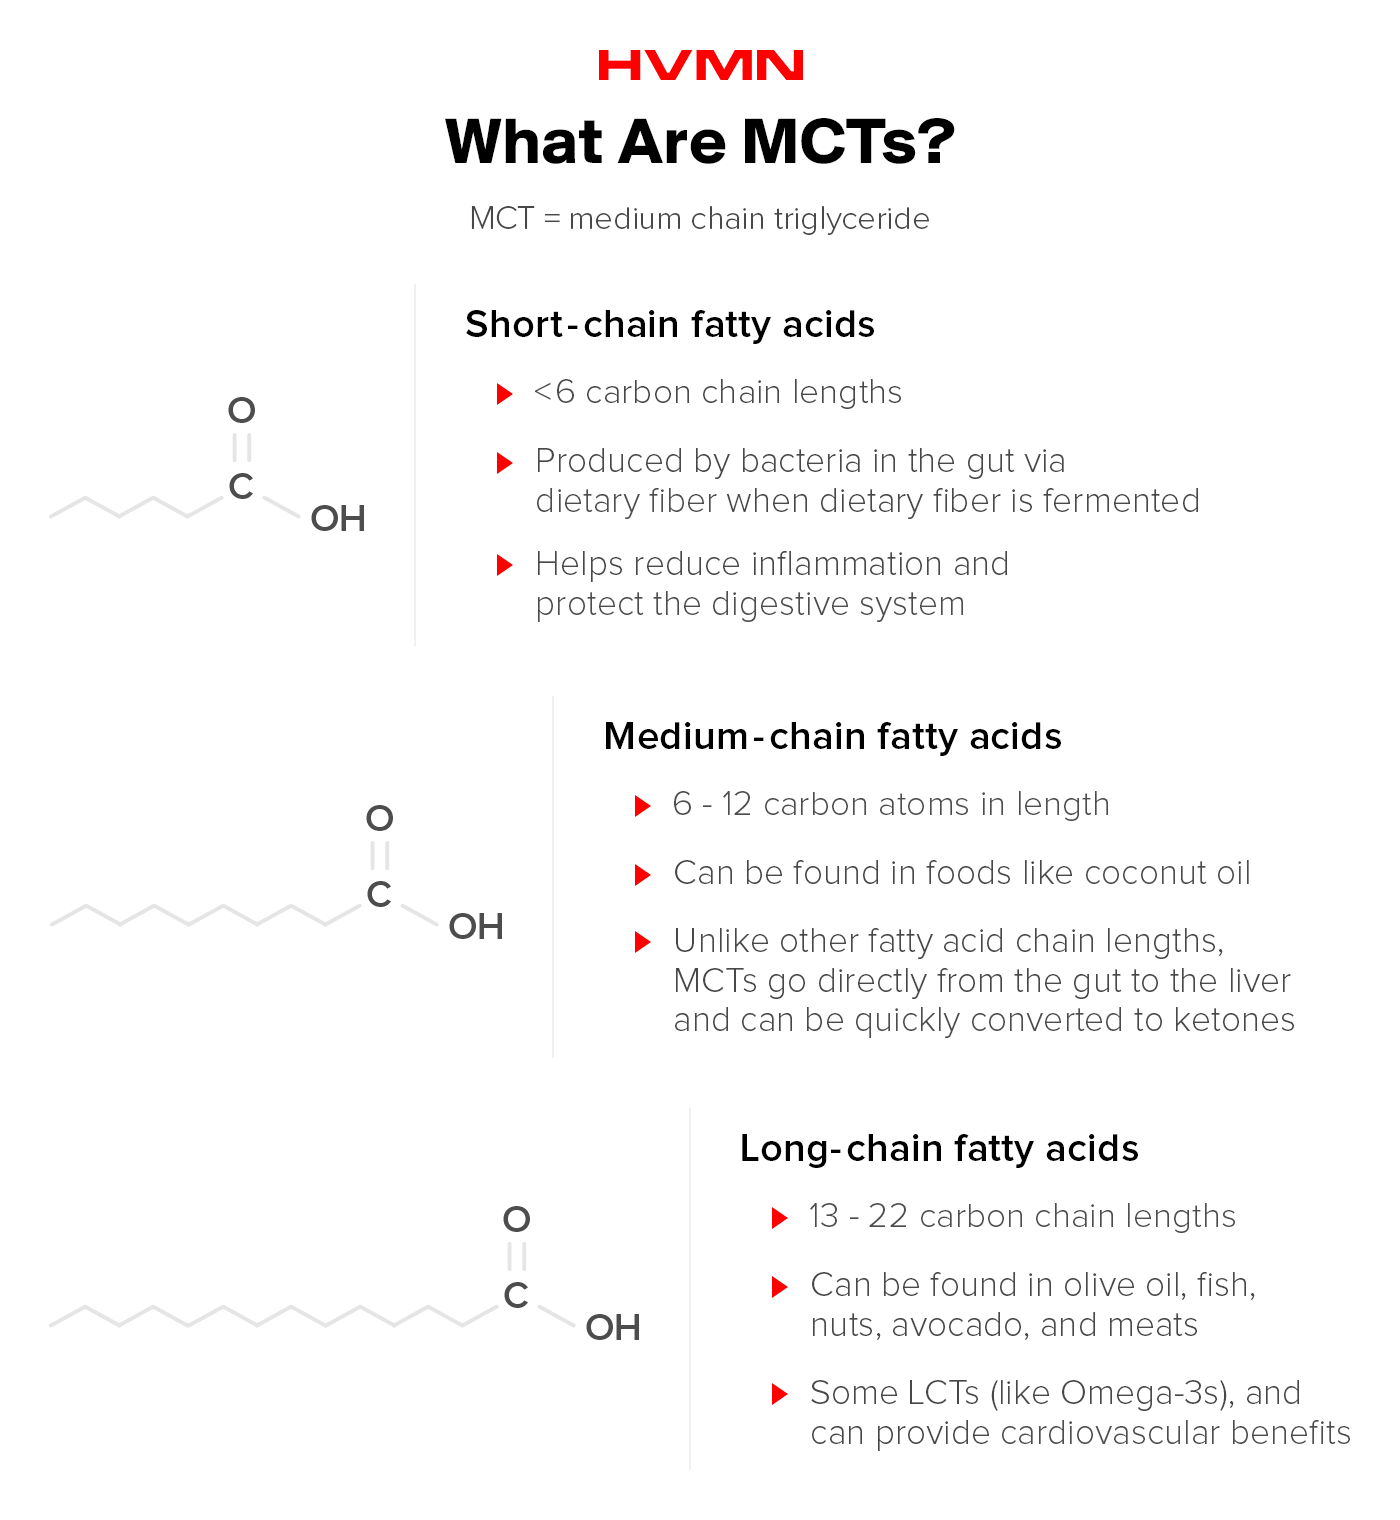 Images of the different chemical forms of MCT, showing their different chain lengths.